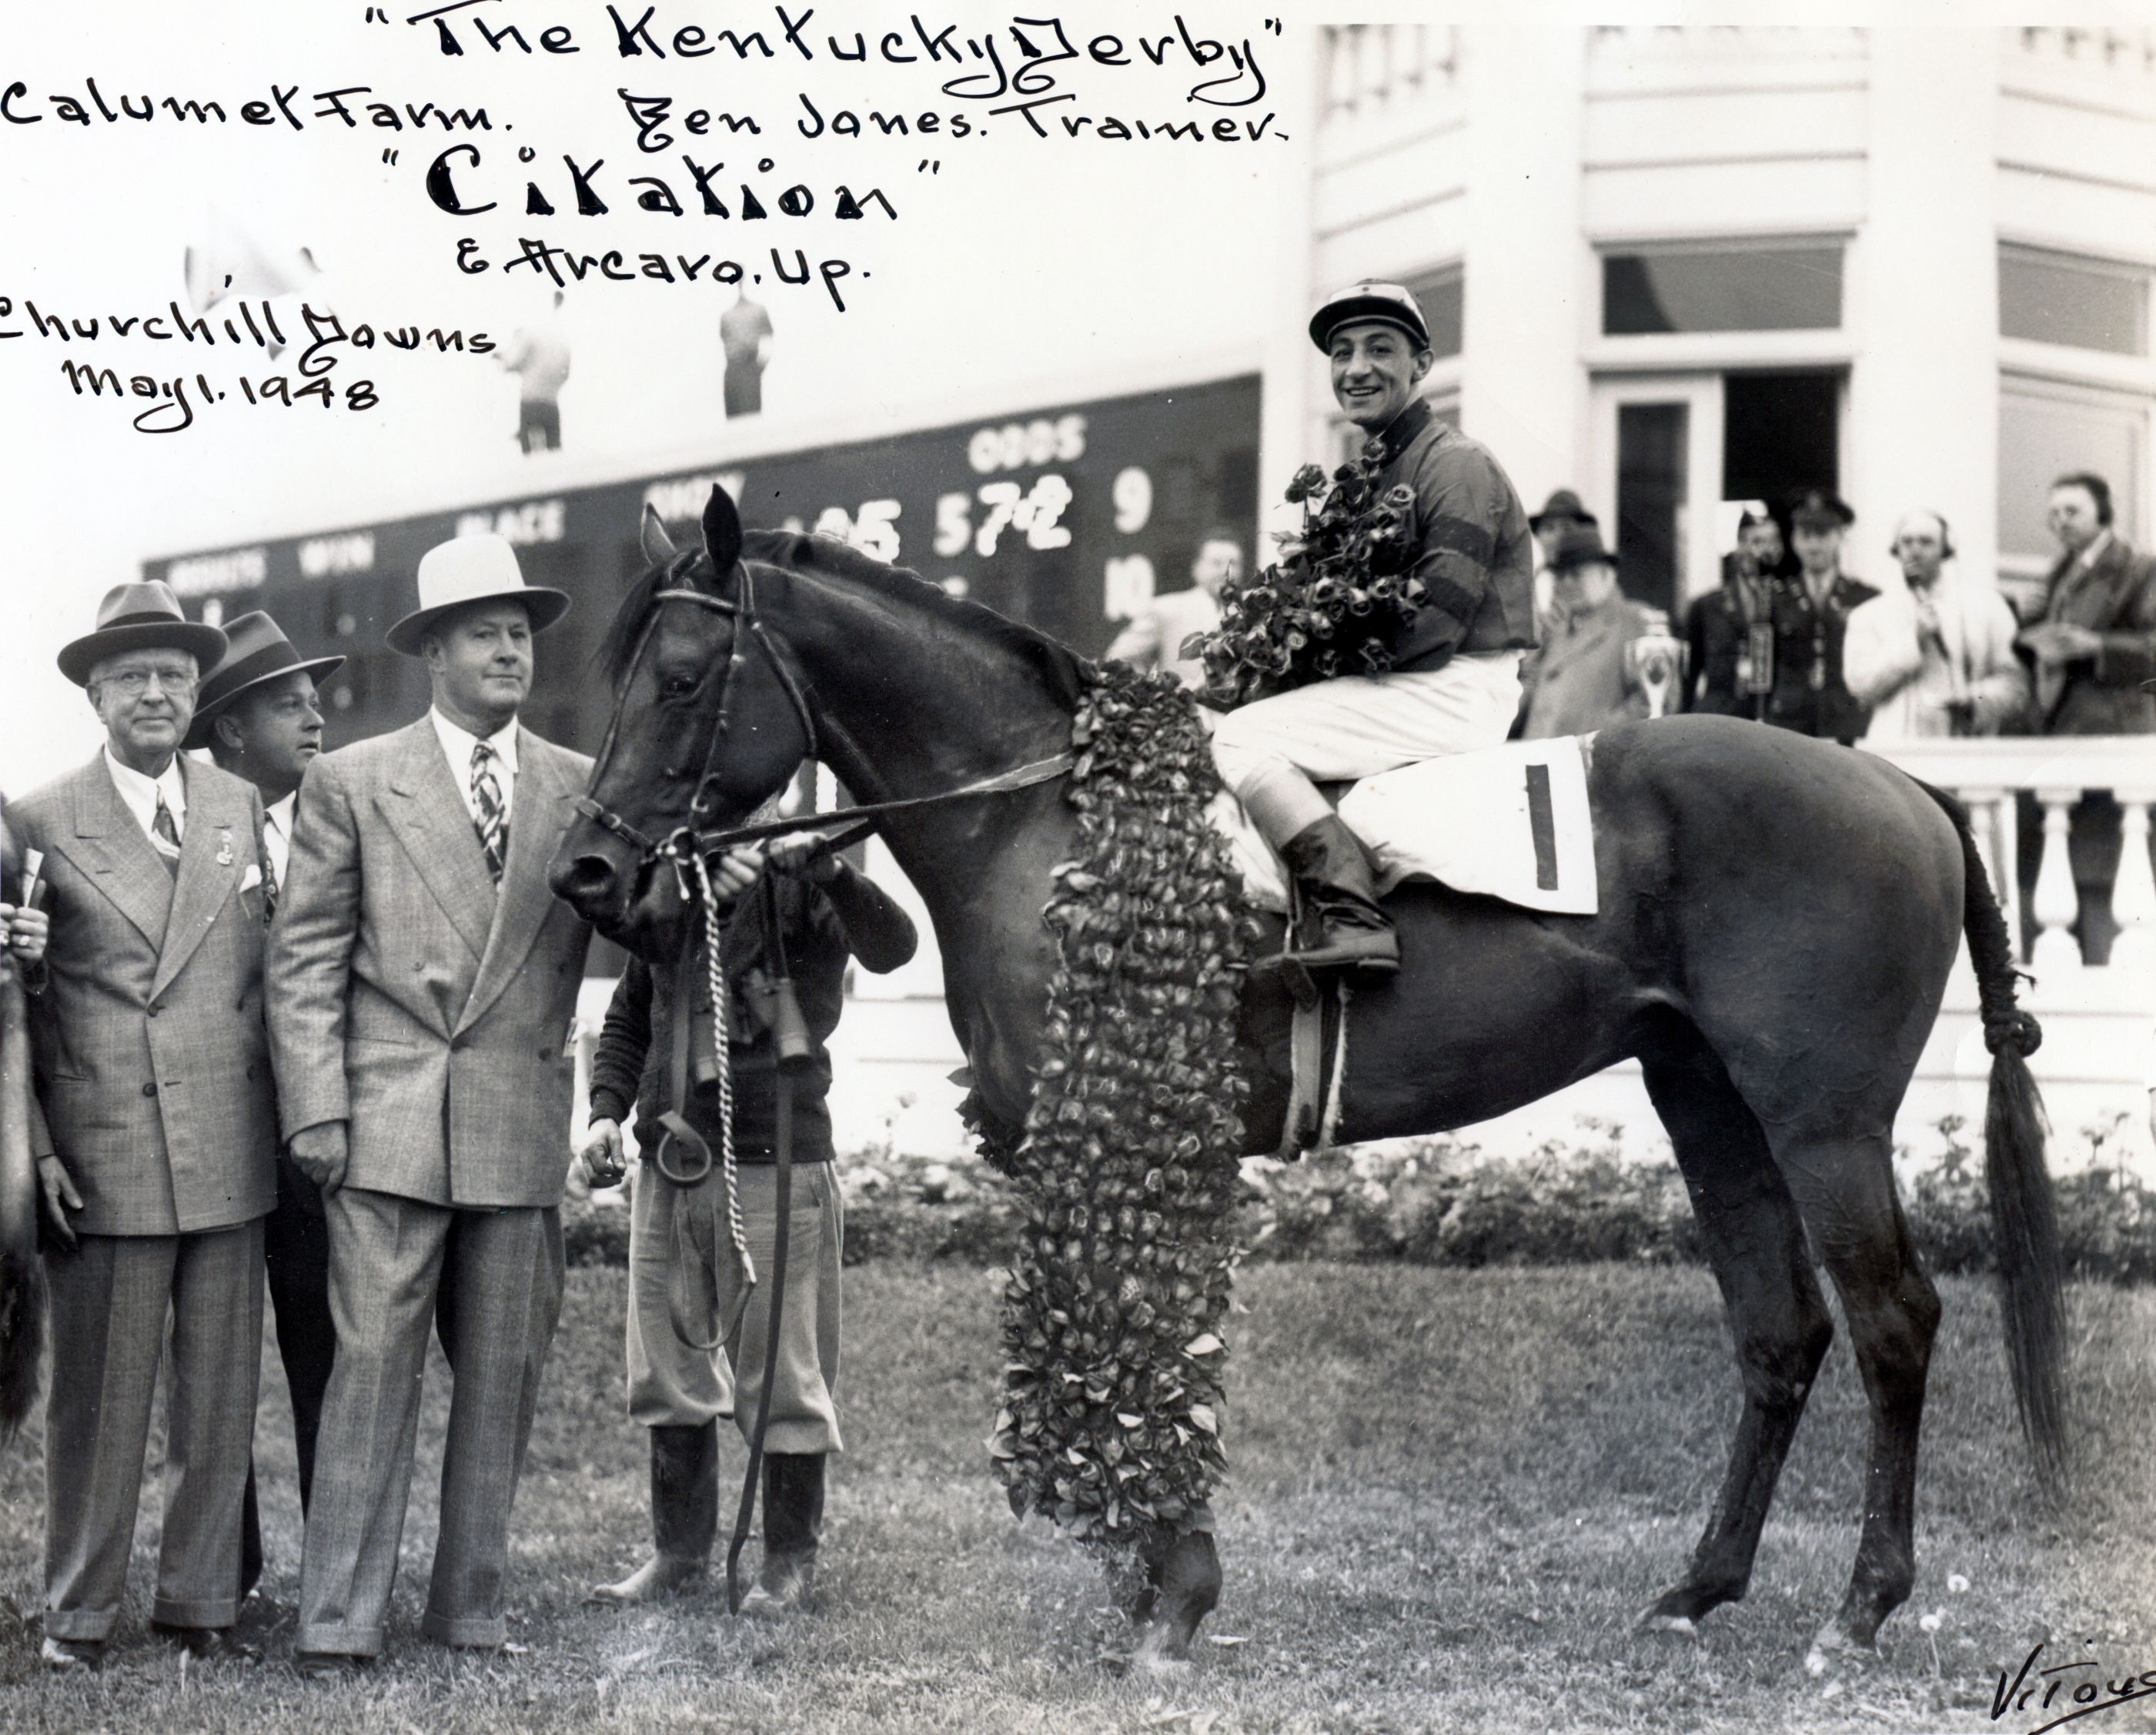 Winner's circle photo for the 1948 Kentucky Derby, won by Citation (Museum Collection)